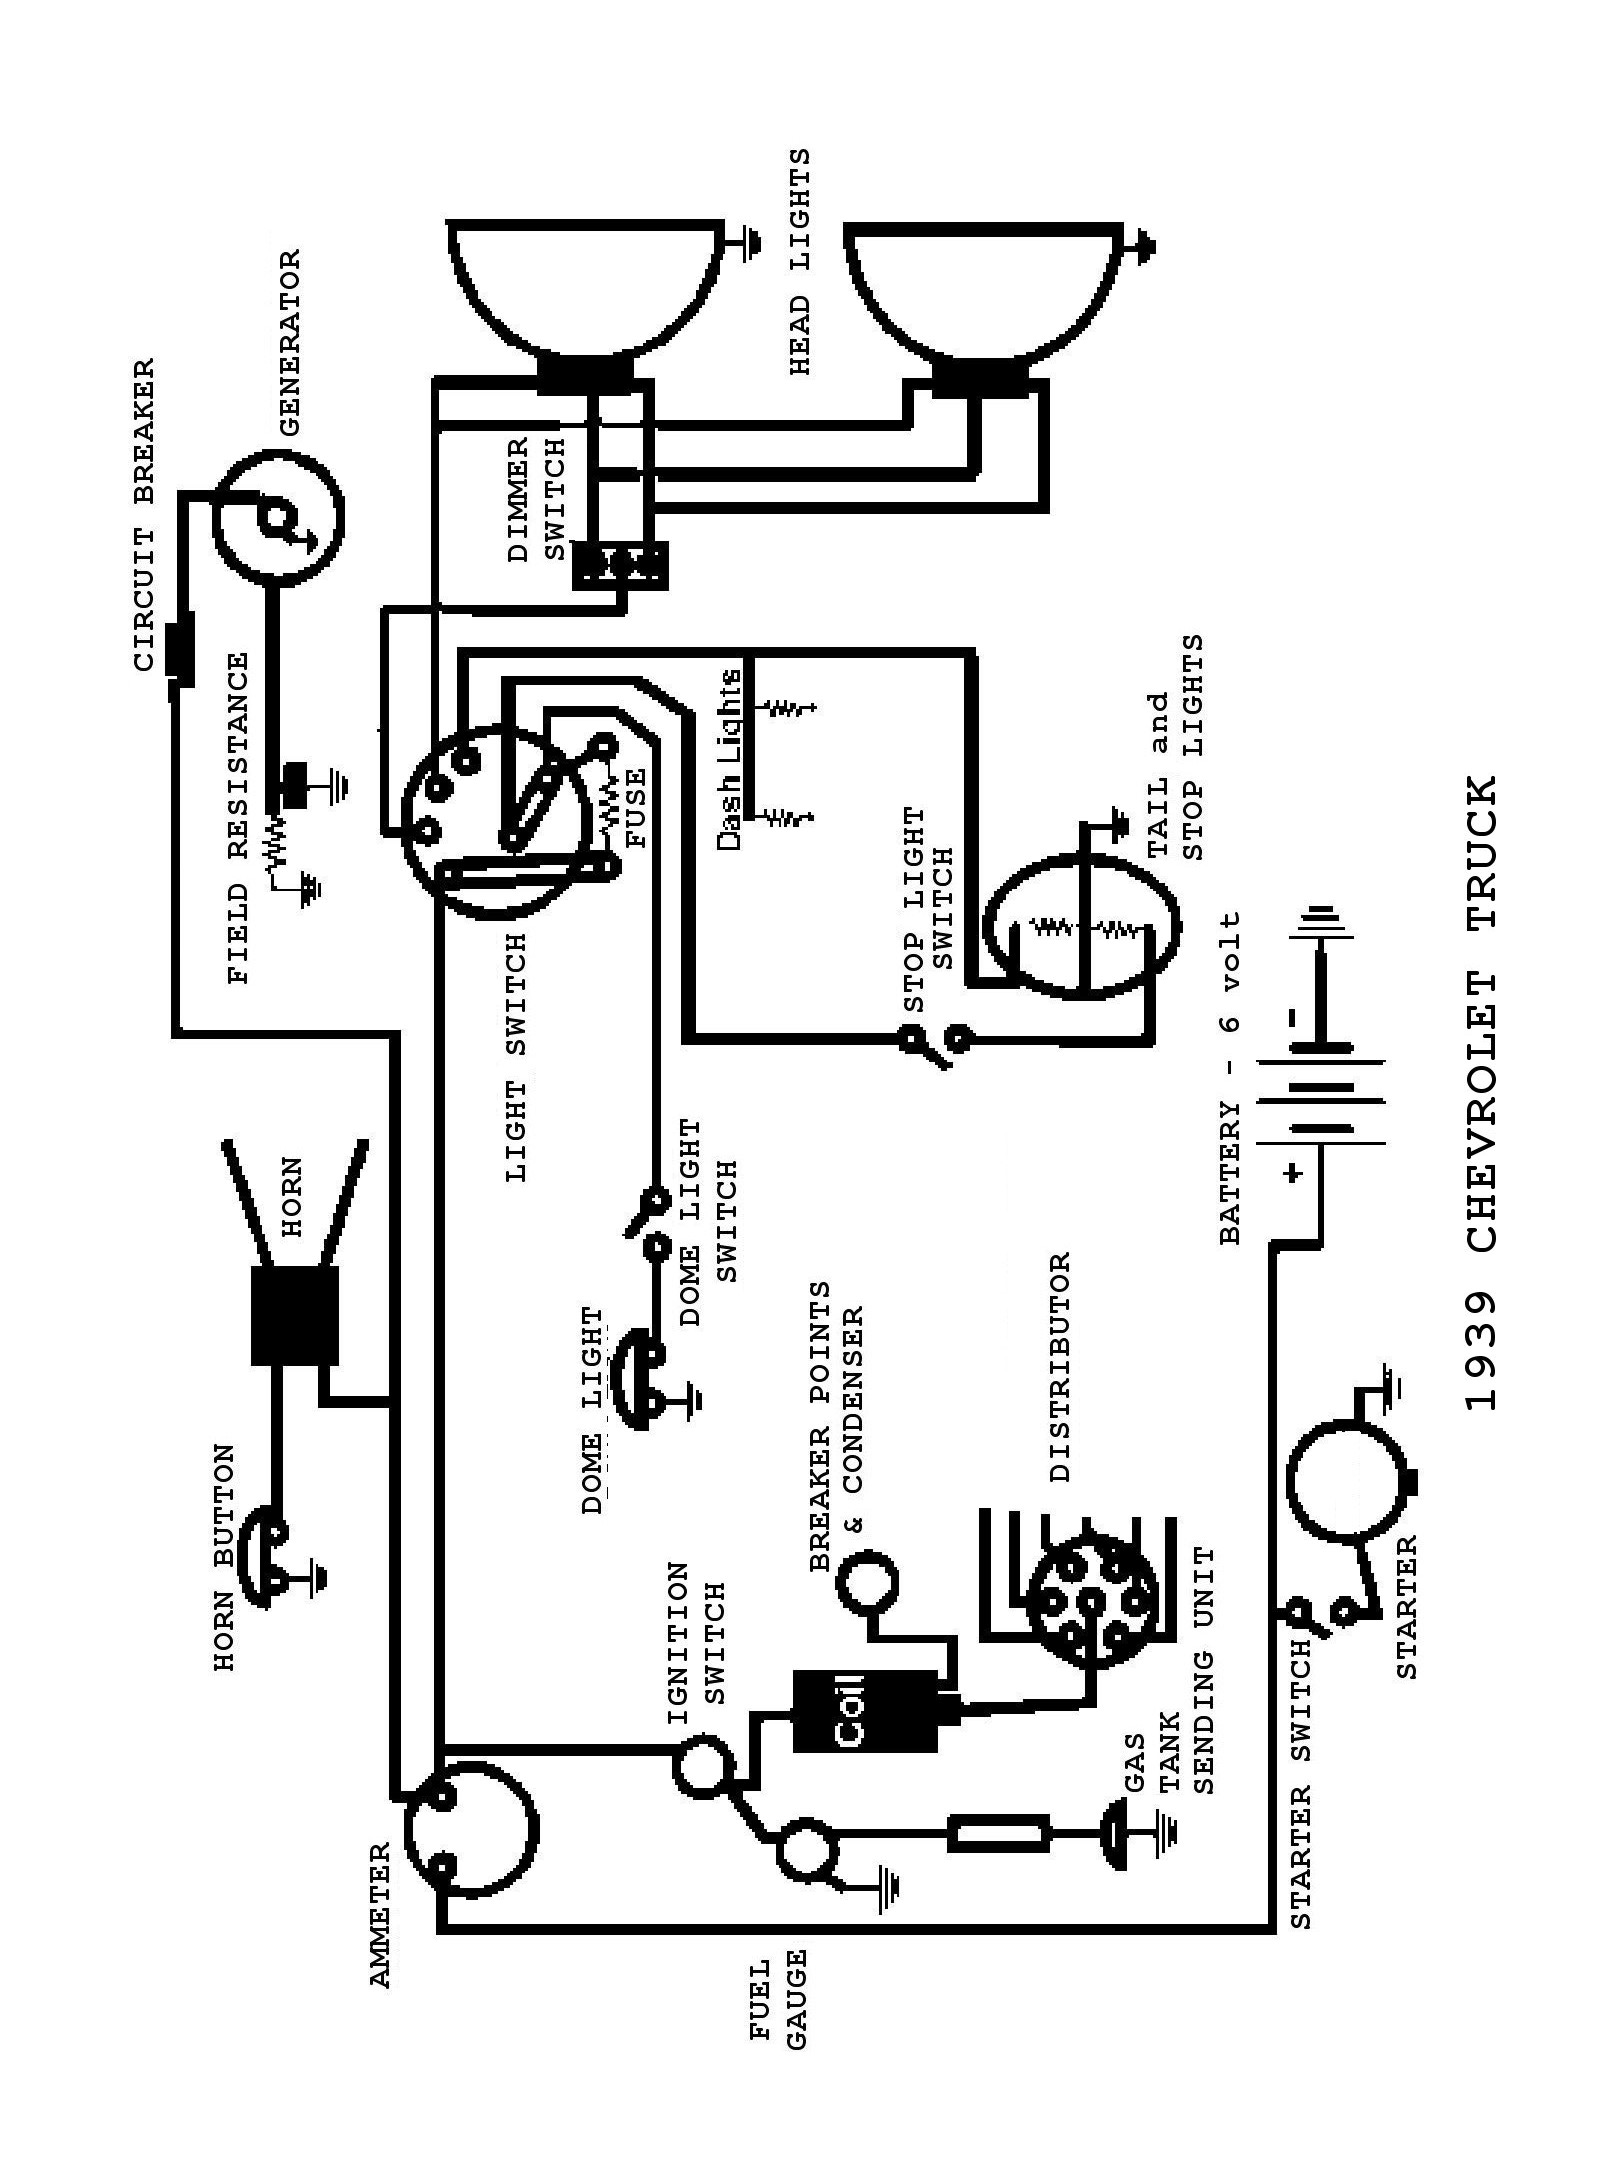 1977 Dodge Ignition Wiring Diagram, 1977, Free Engine